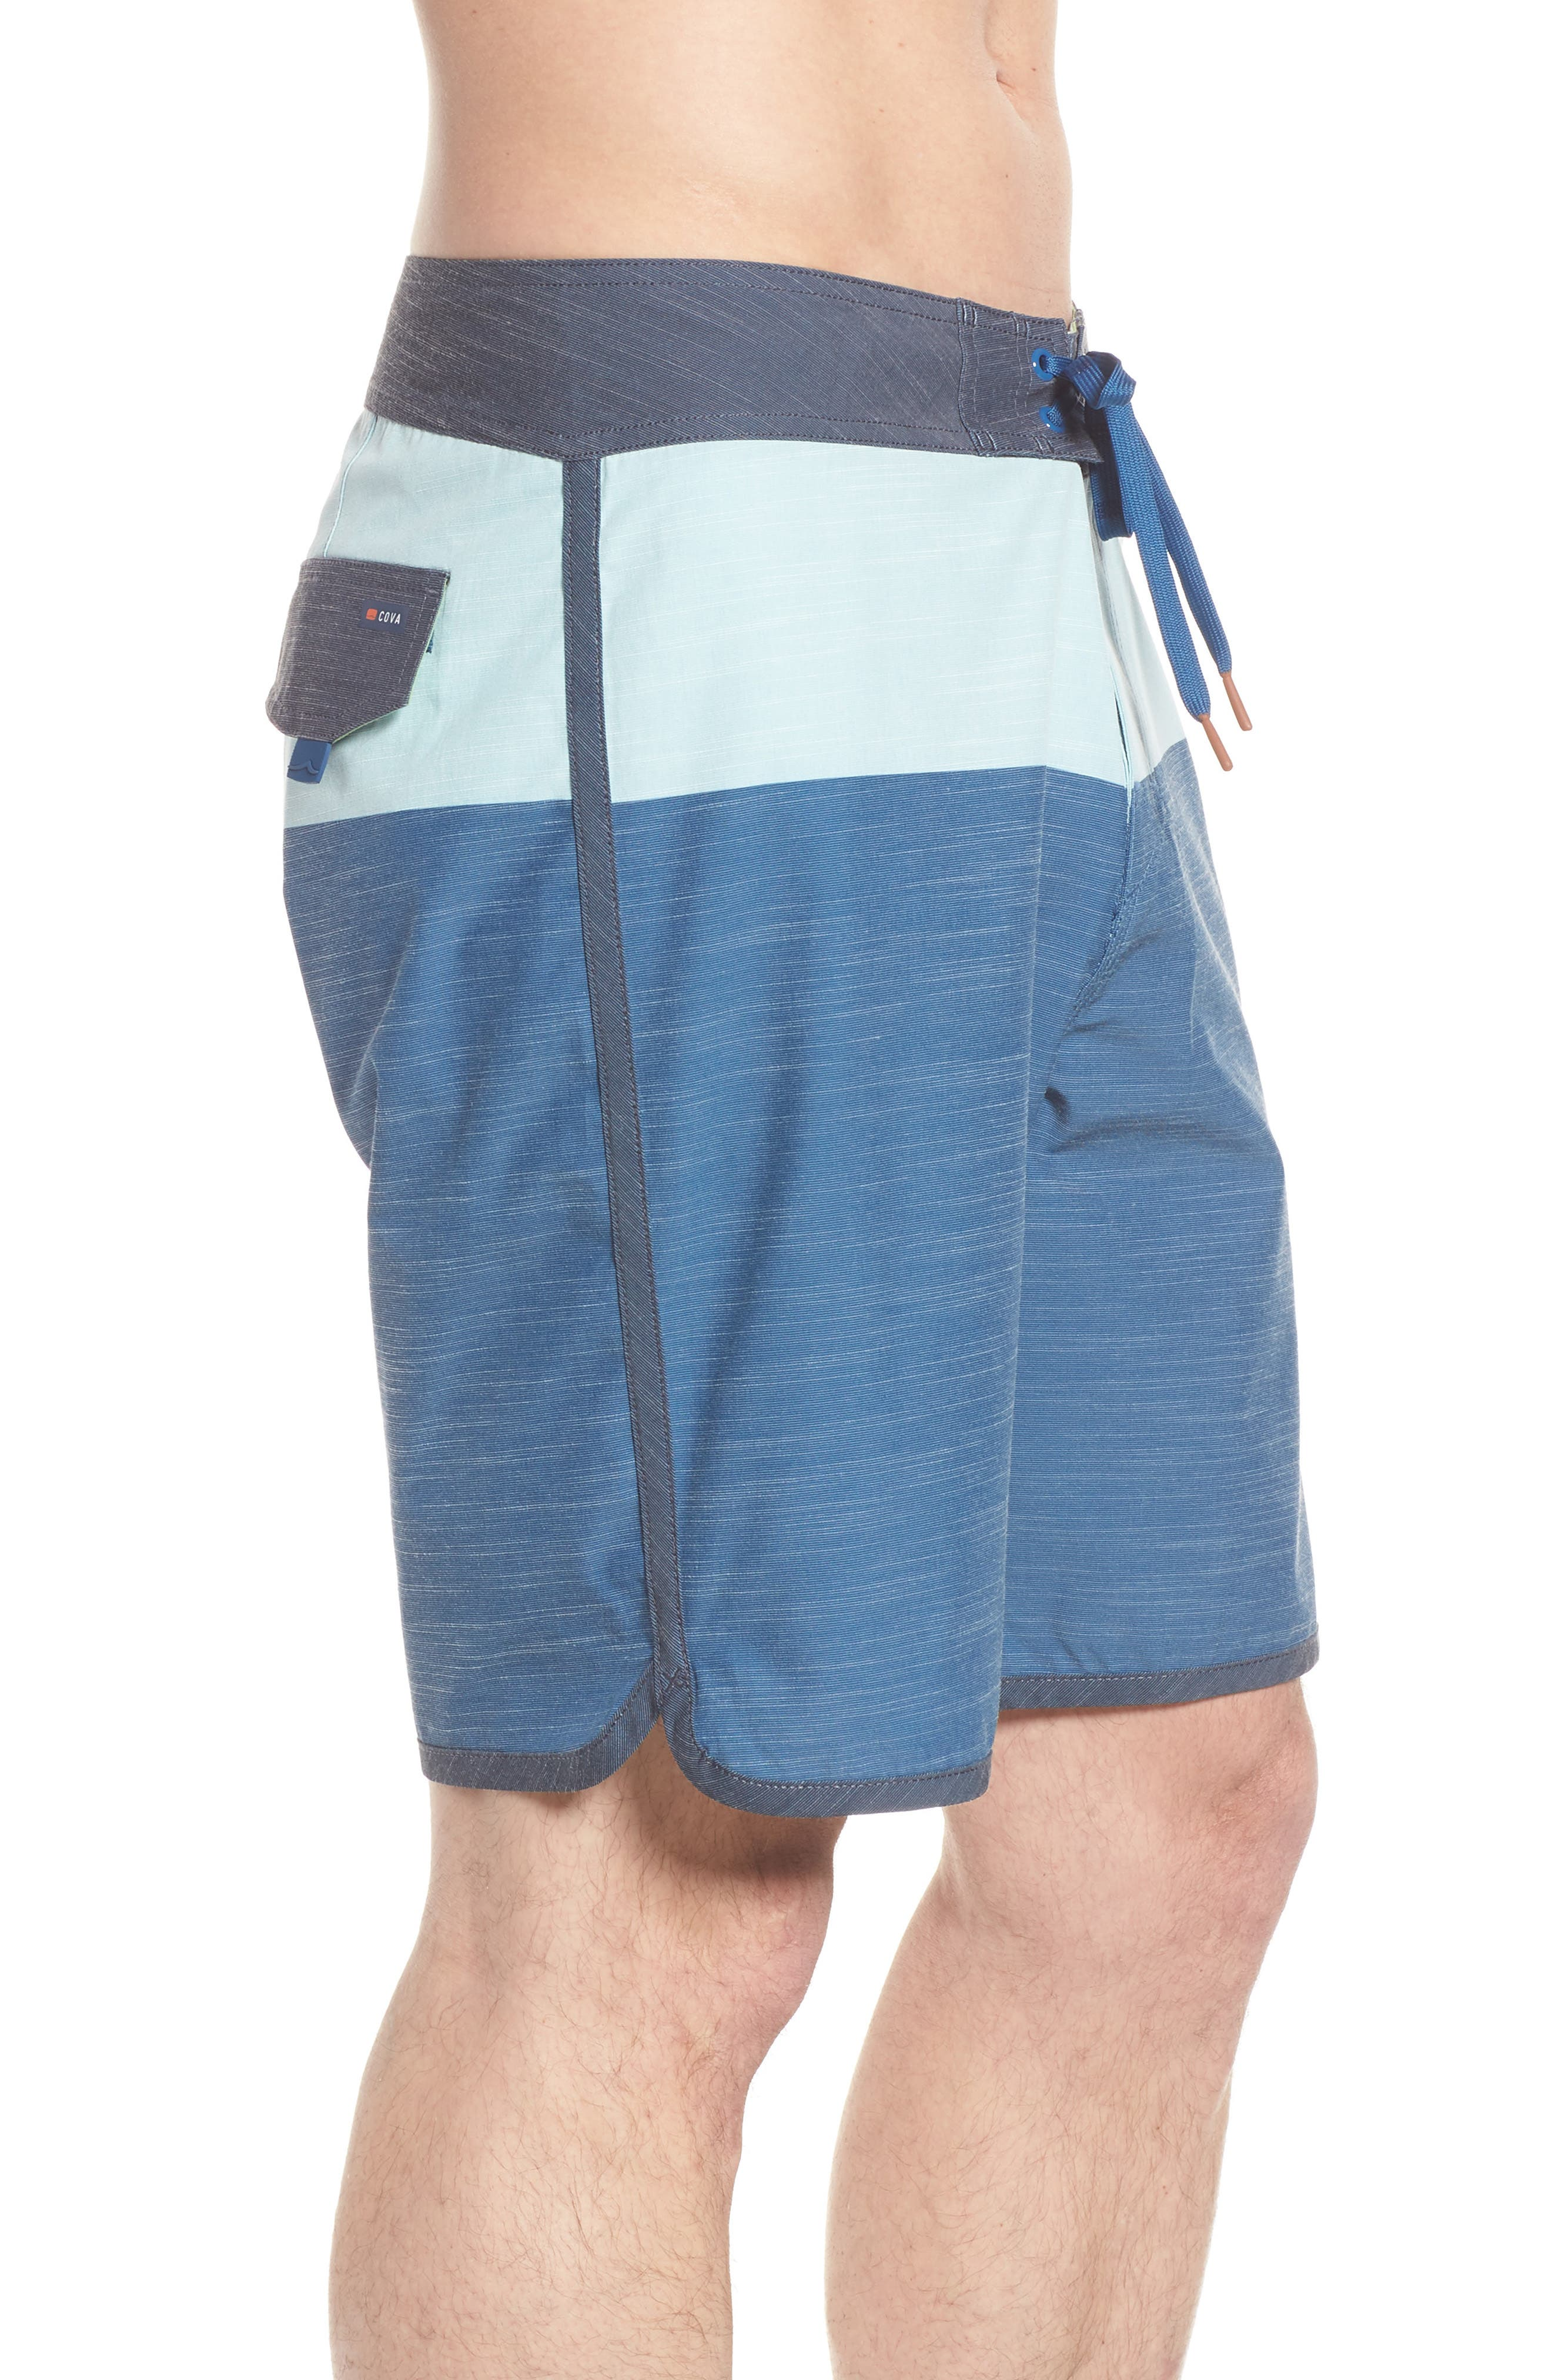 Beachcomber Board Shorts,                             Alternate thumbnail 4, color,                             Ocean Blue